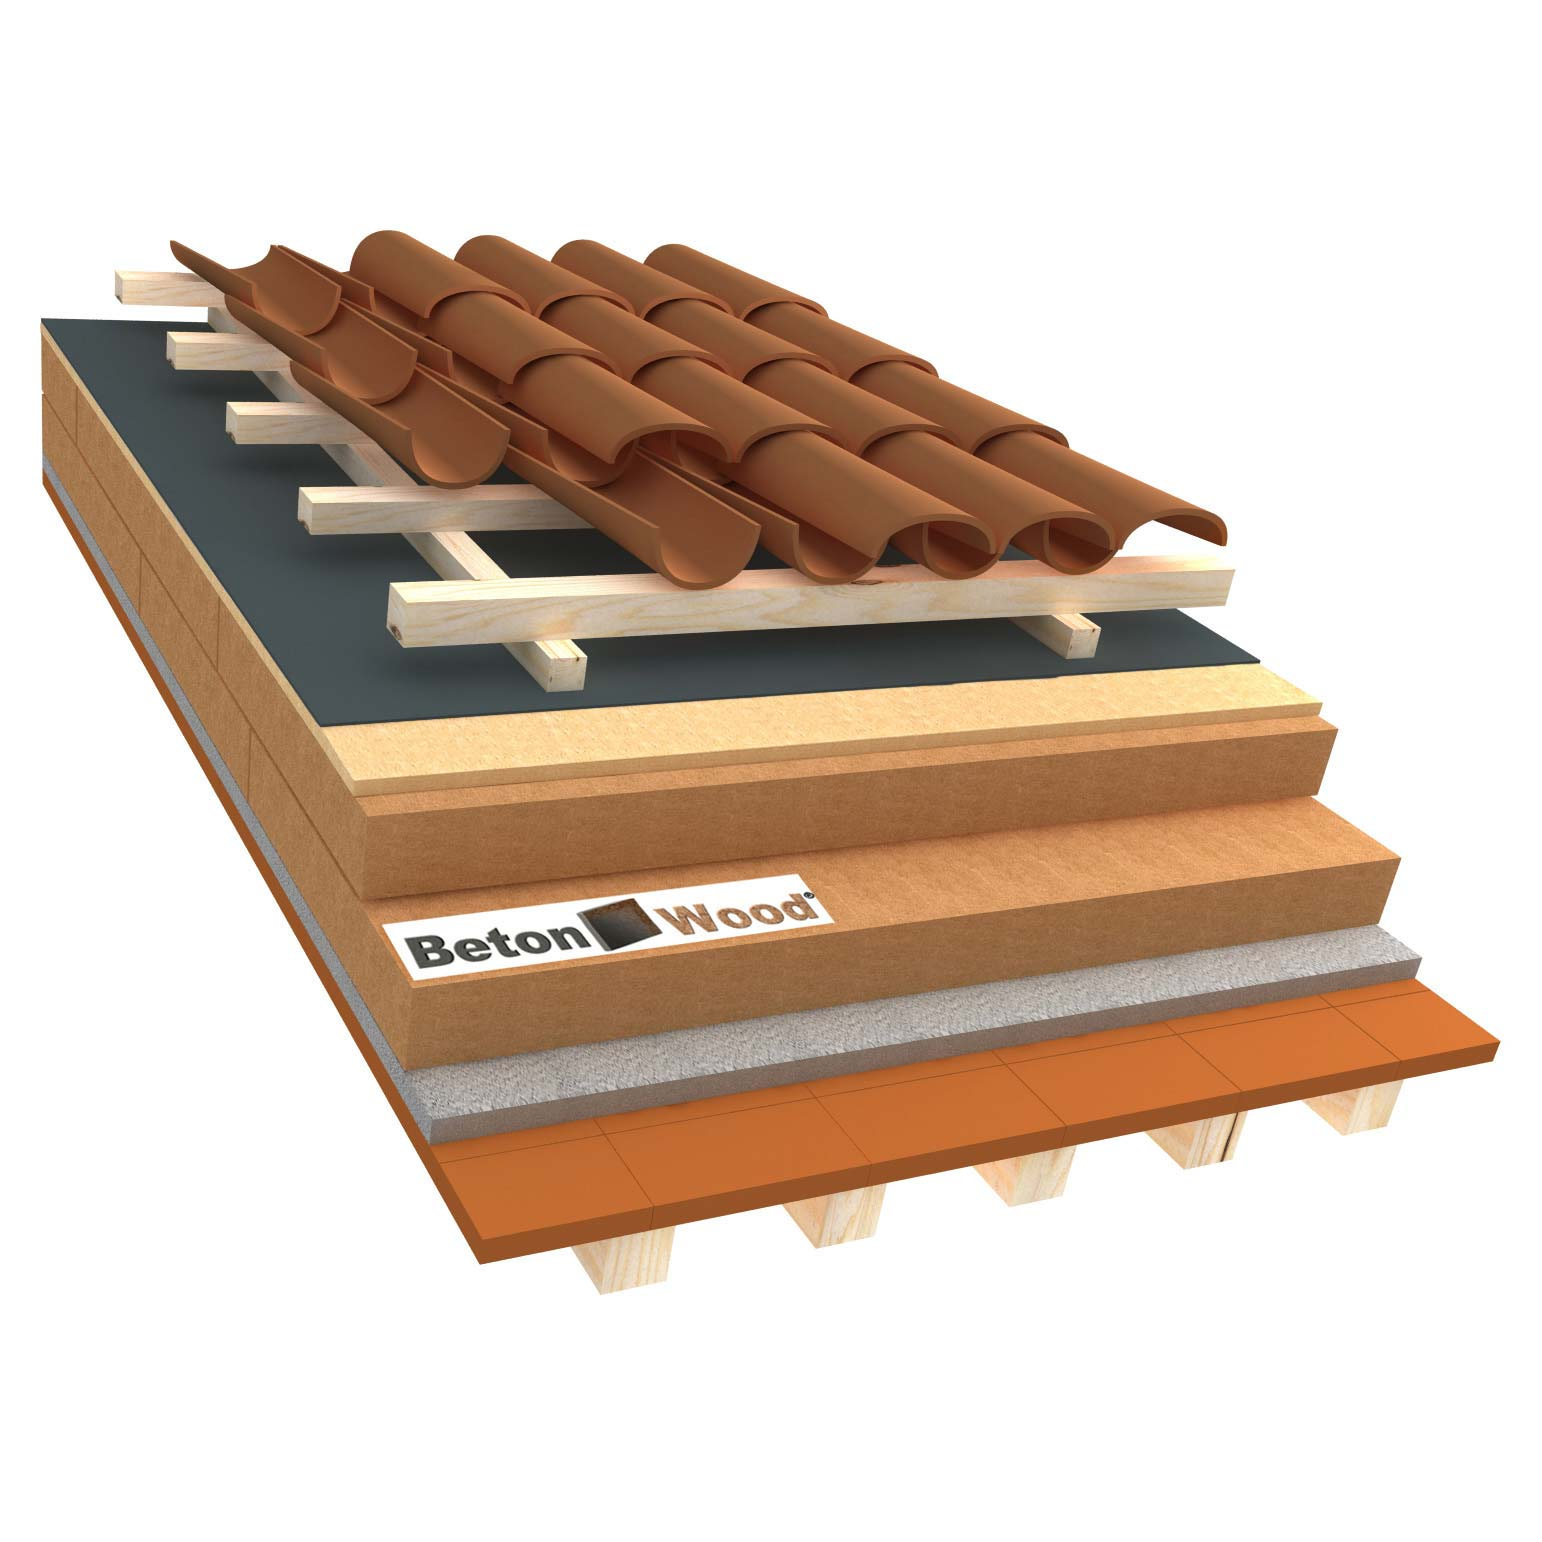 Ventilated roof with wood fiber Isorel and Therm on terracotta tiles